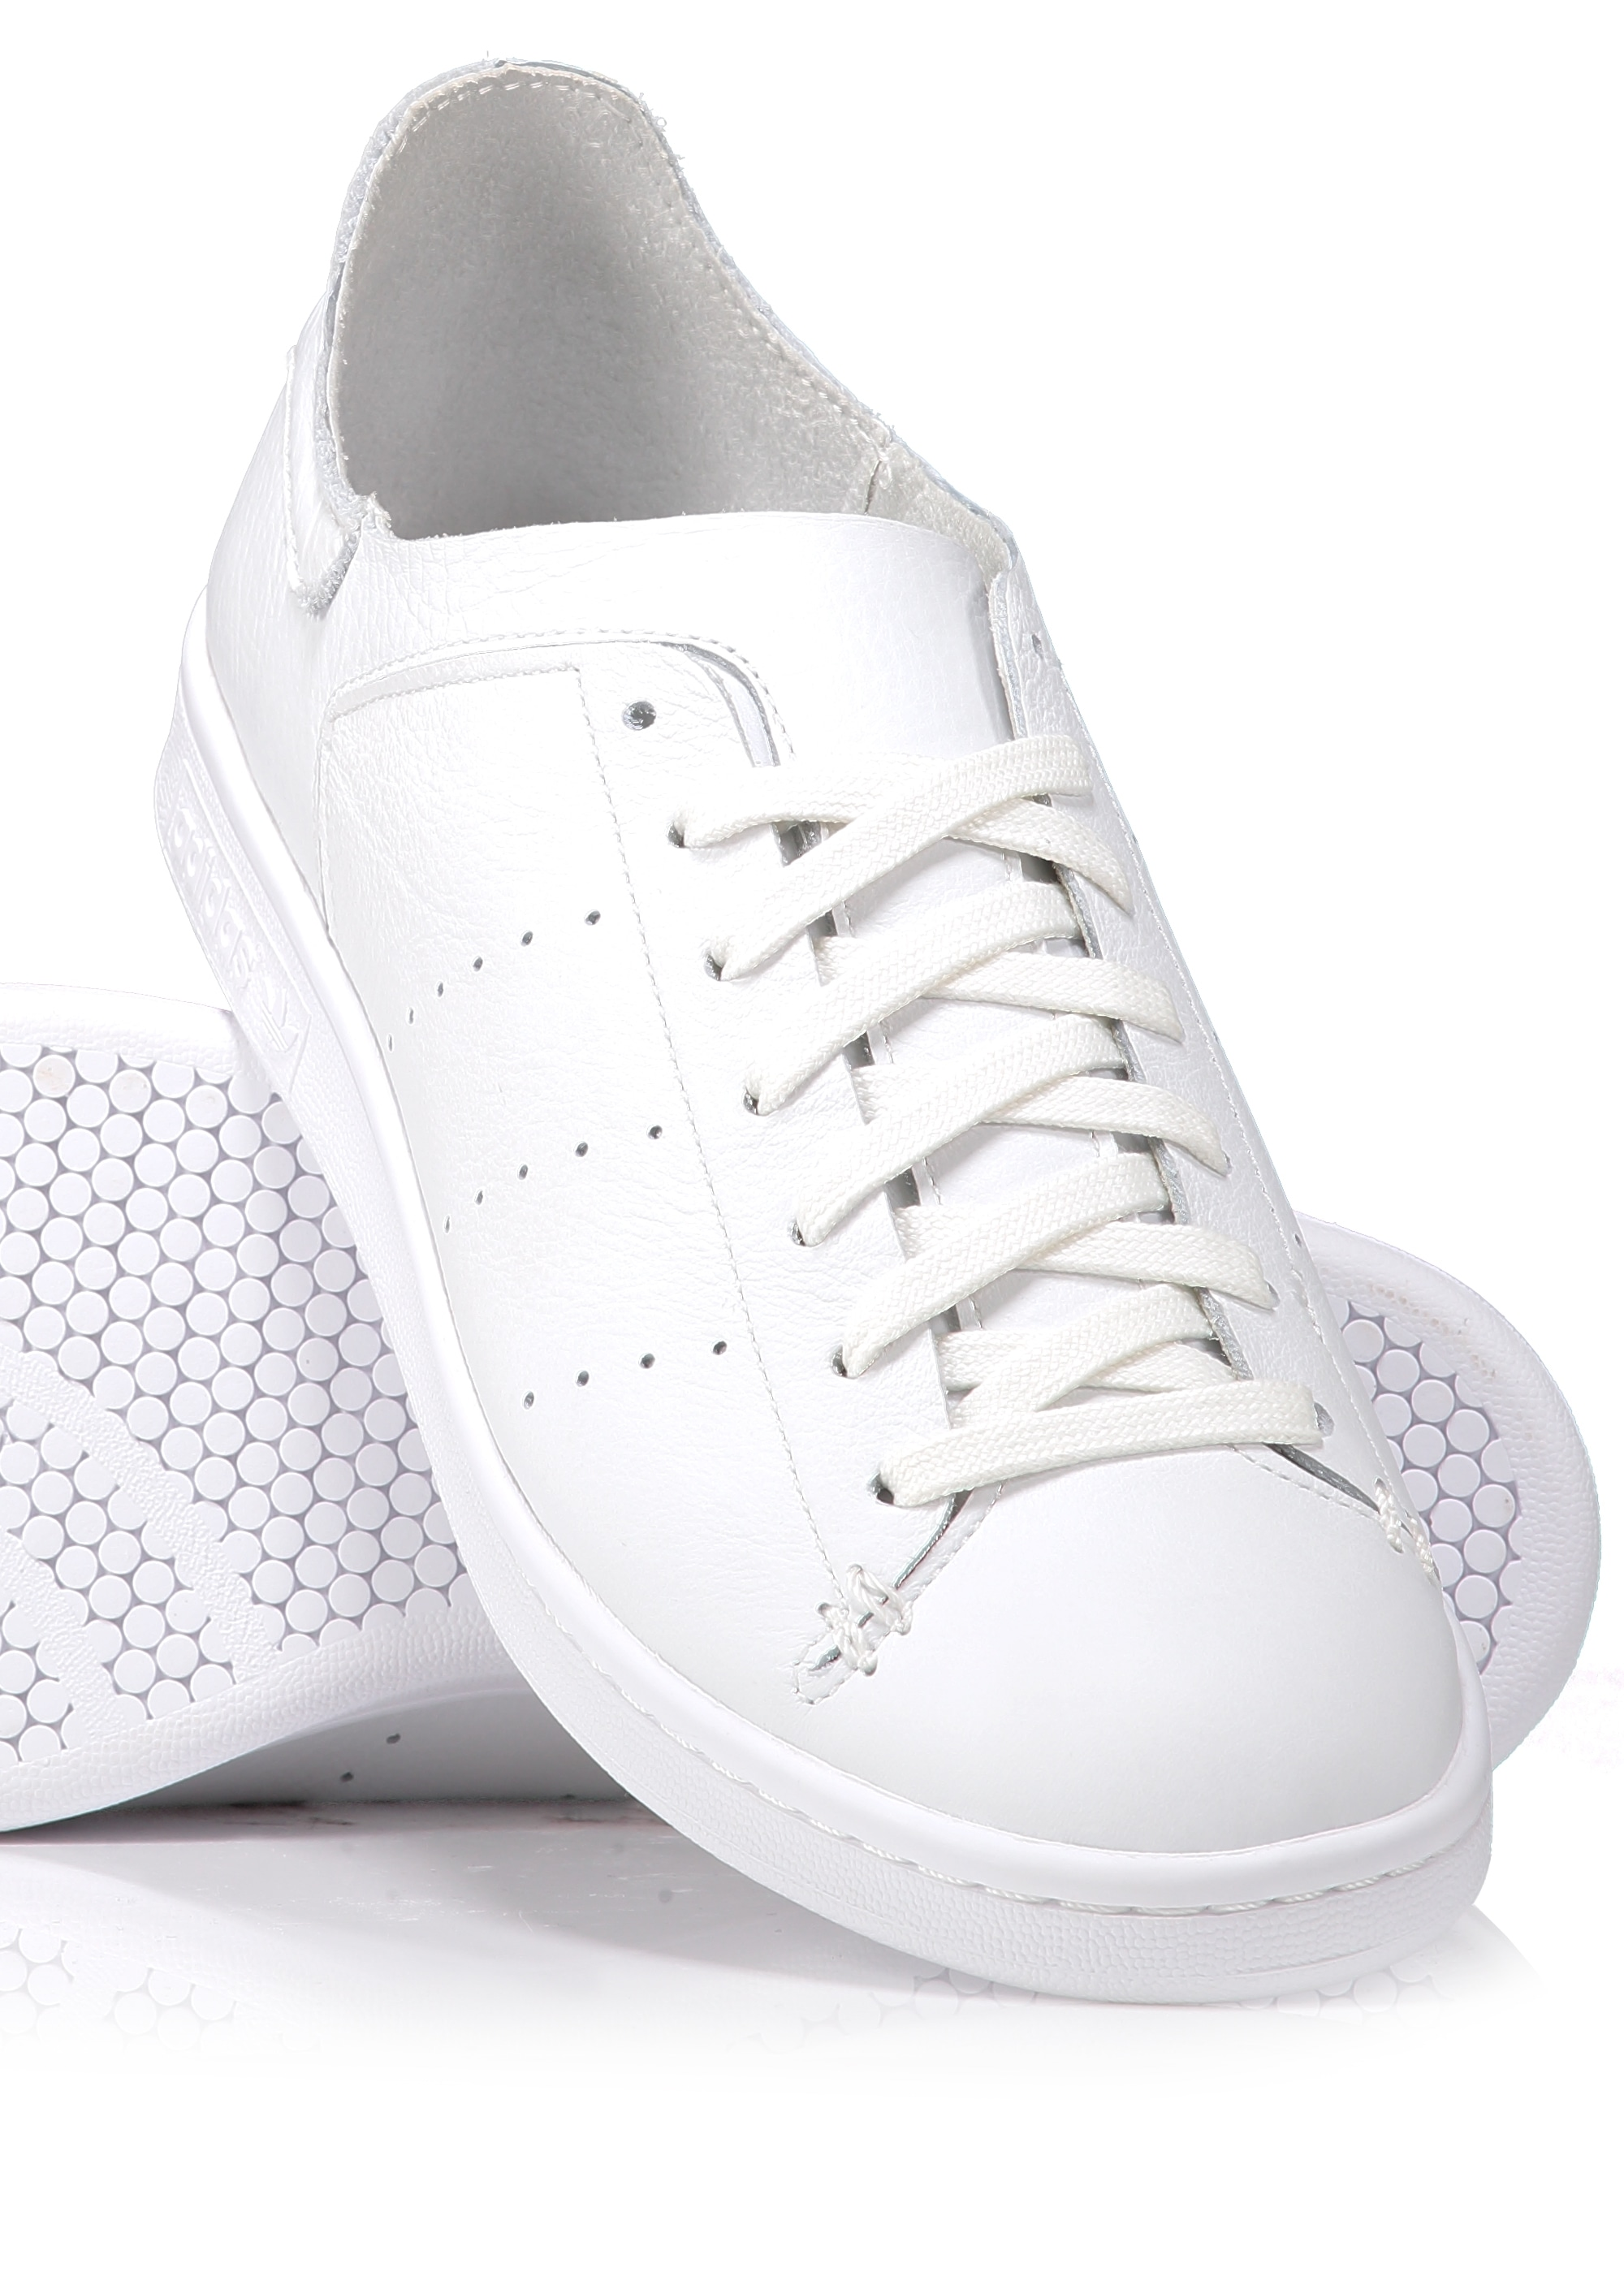 Herren | Adidas Originals Stan Smith Lea Sock Weiß,www